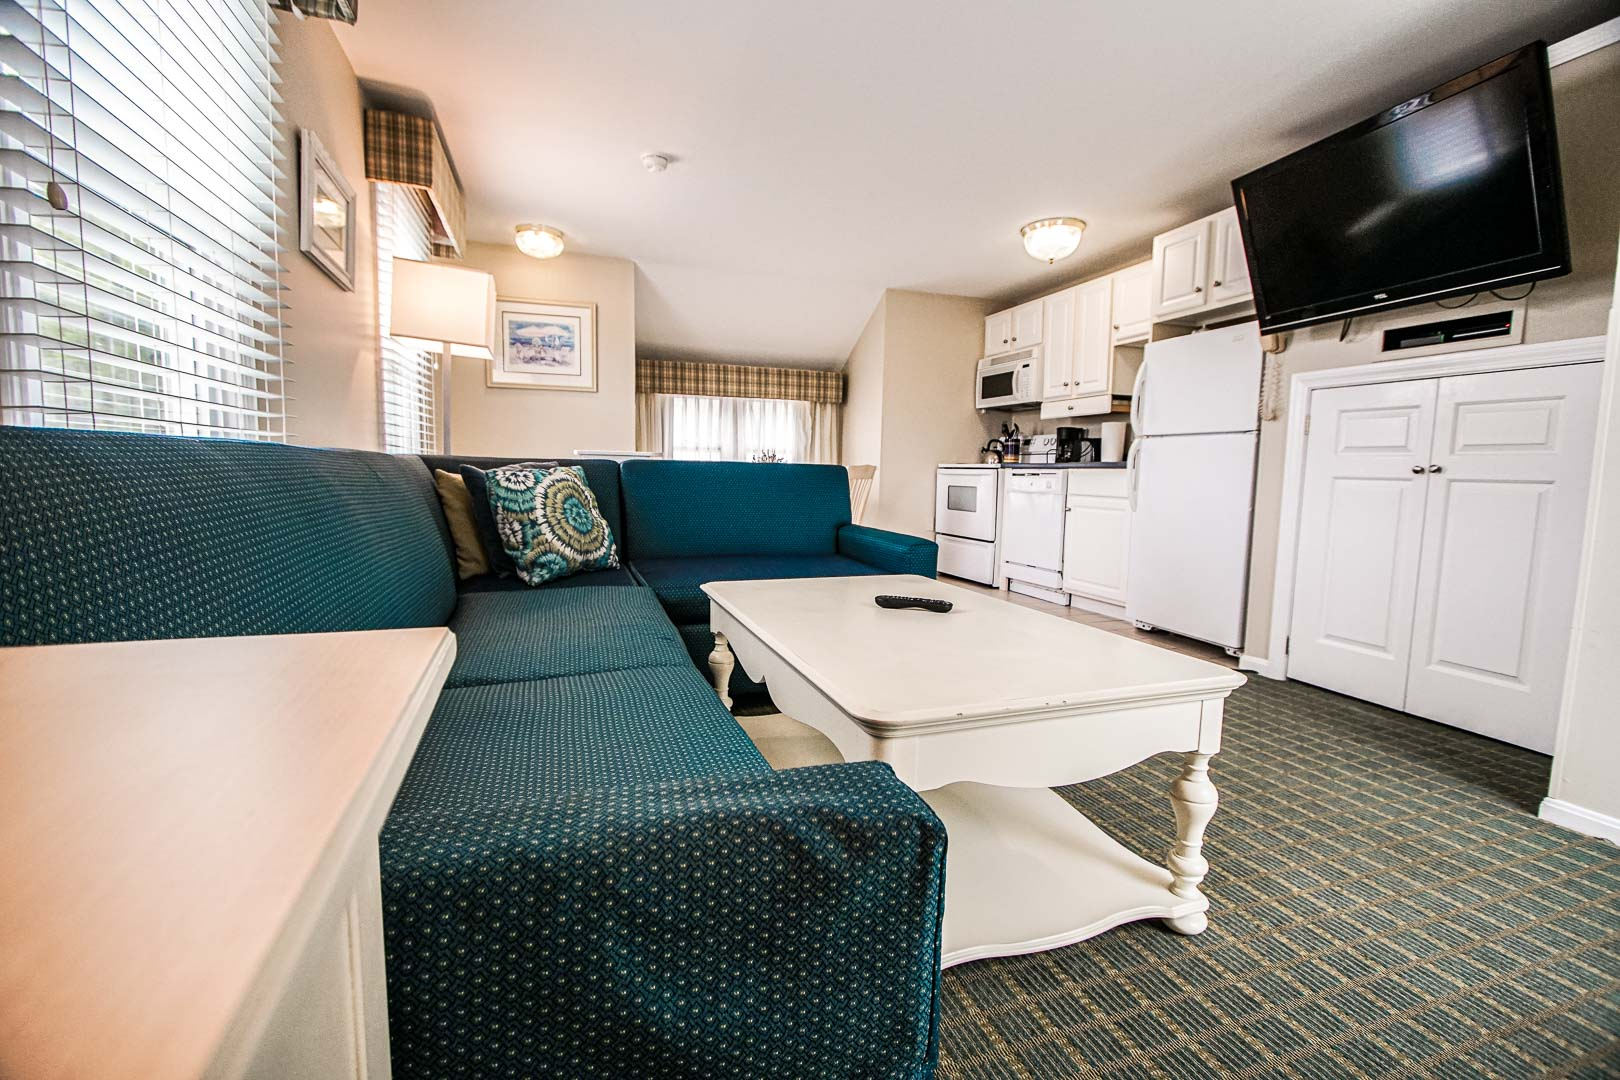 A roomy living room area at VRI's Cape Winds Resort in Massachusetts.